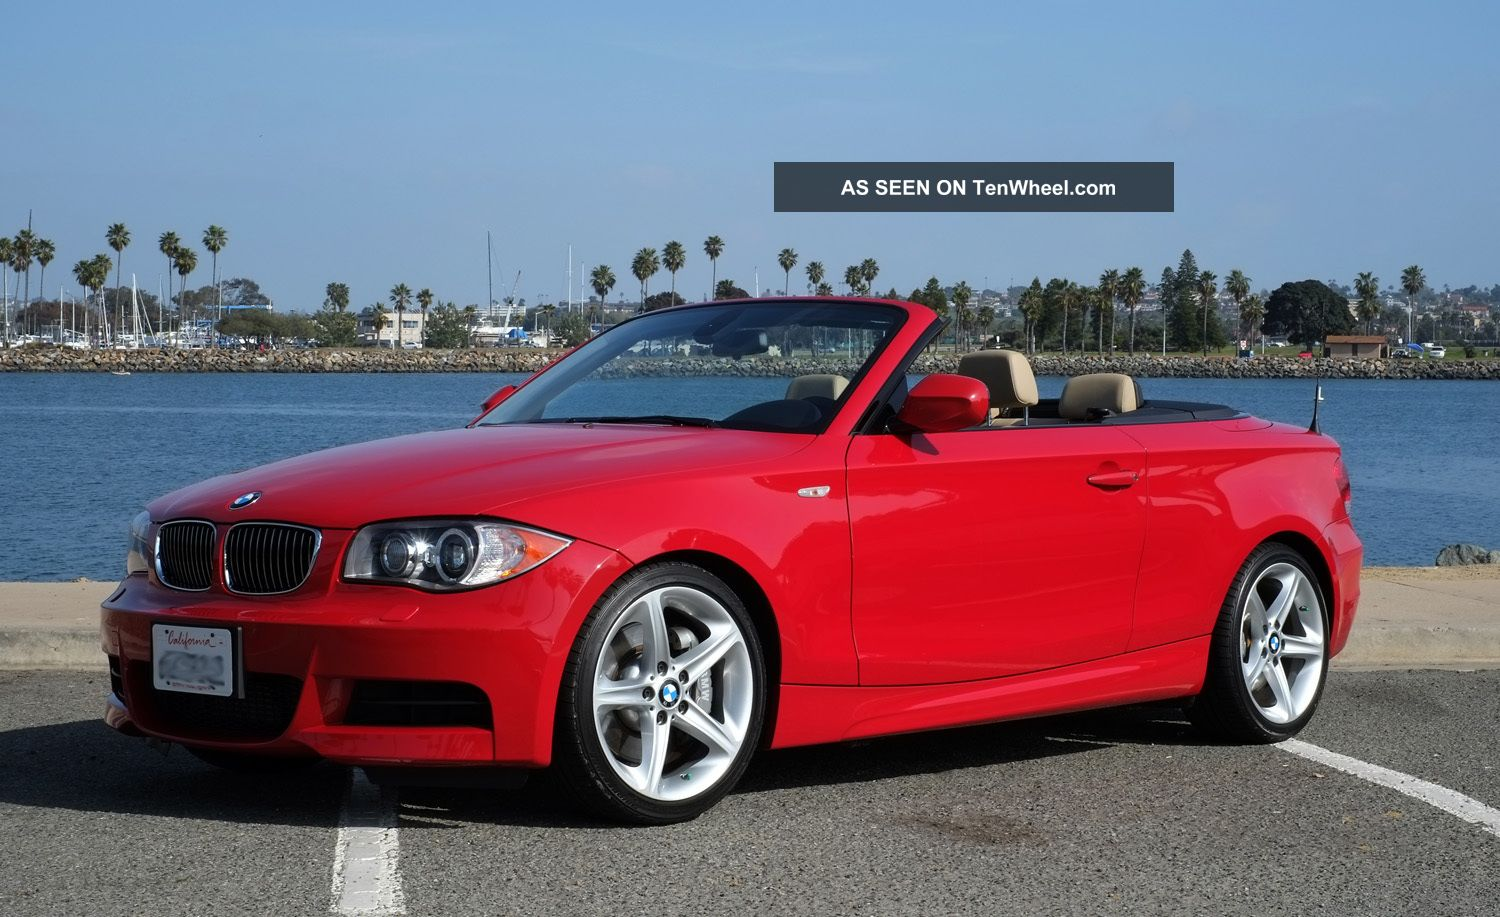 2011 Bmw 135i Convertible (condition) 1-Series photo